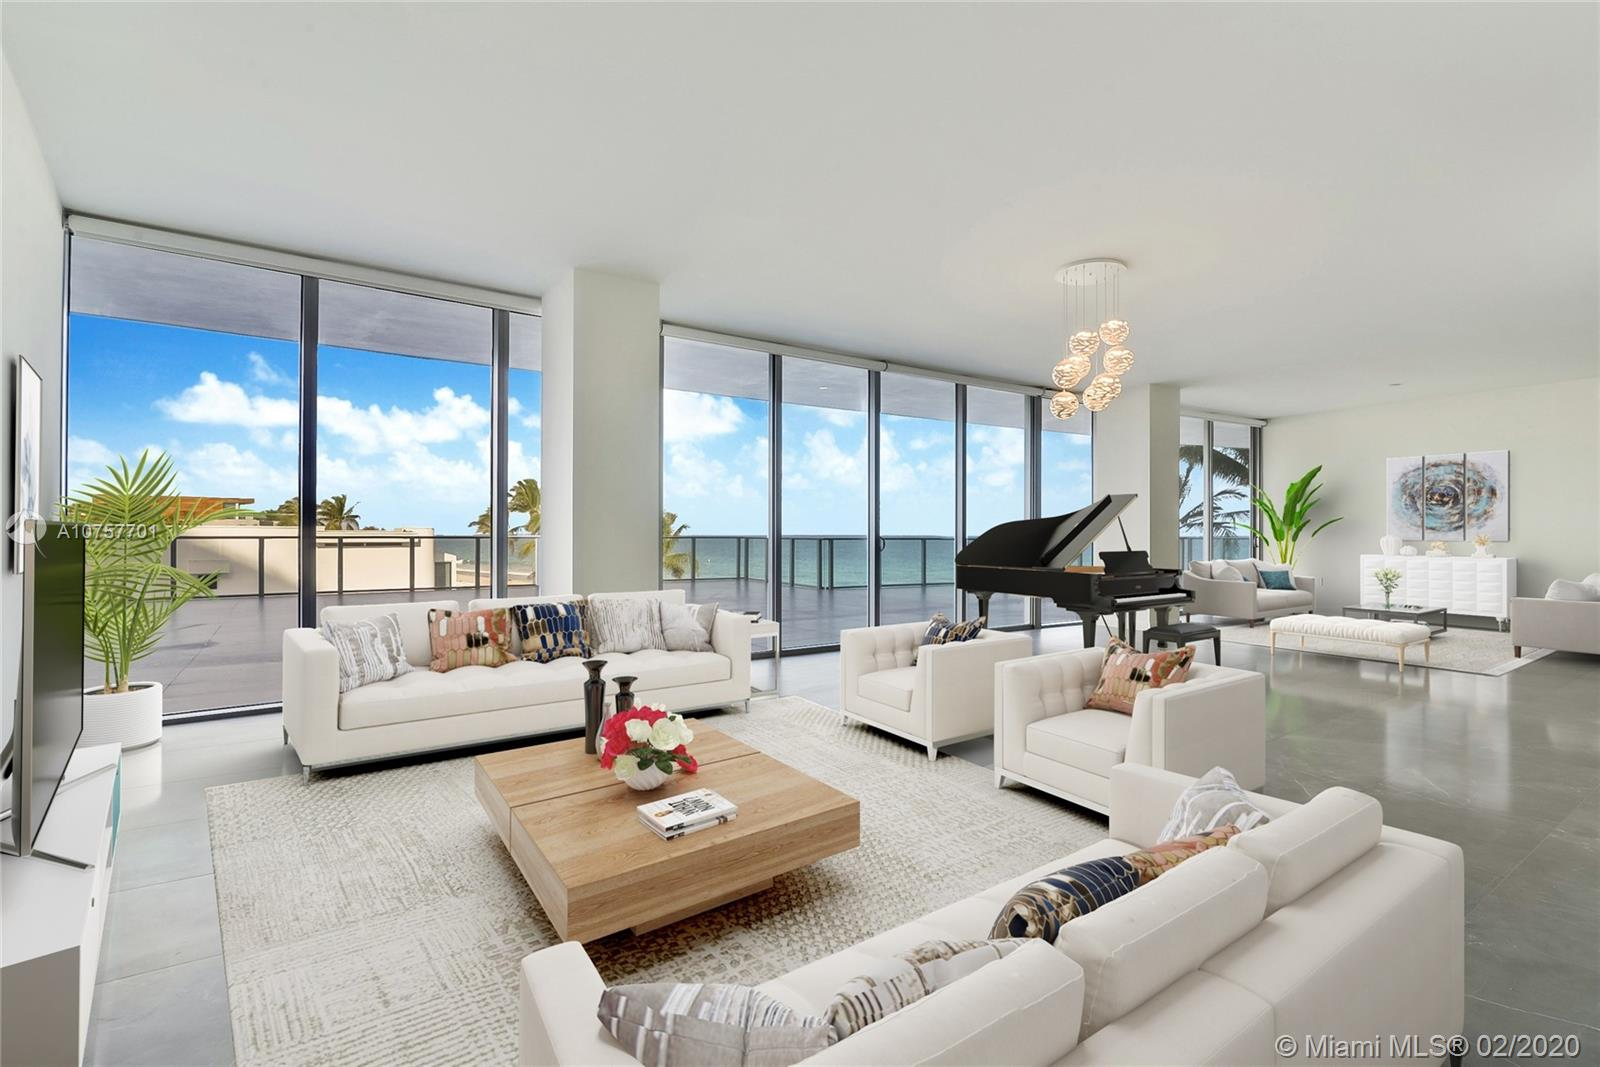 image #1 of property, Auberge Beach Residences, Unit N205